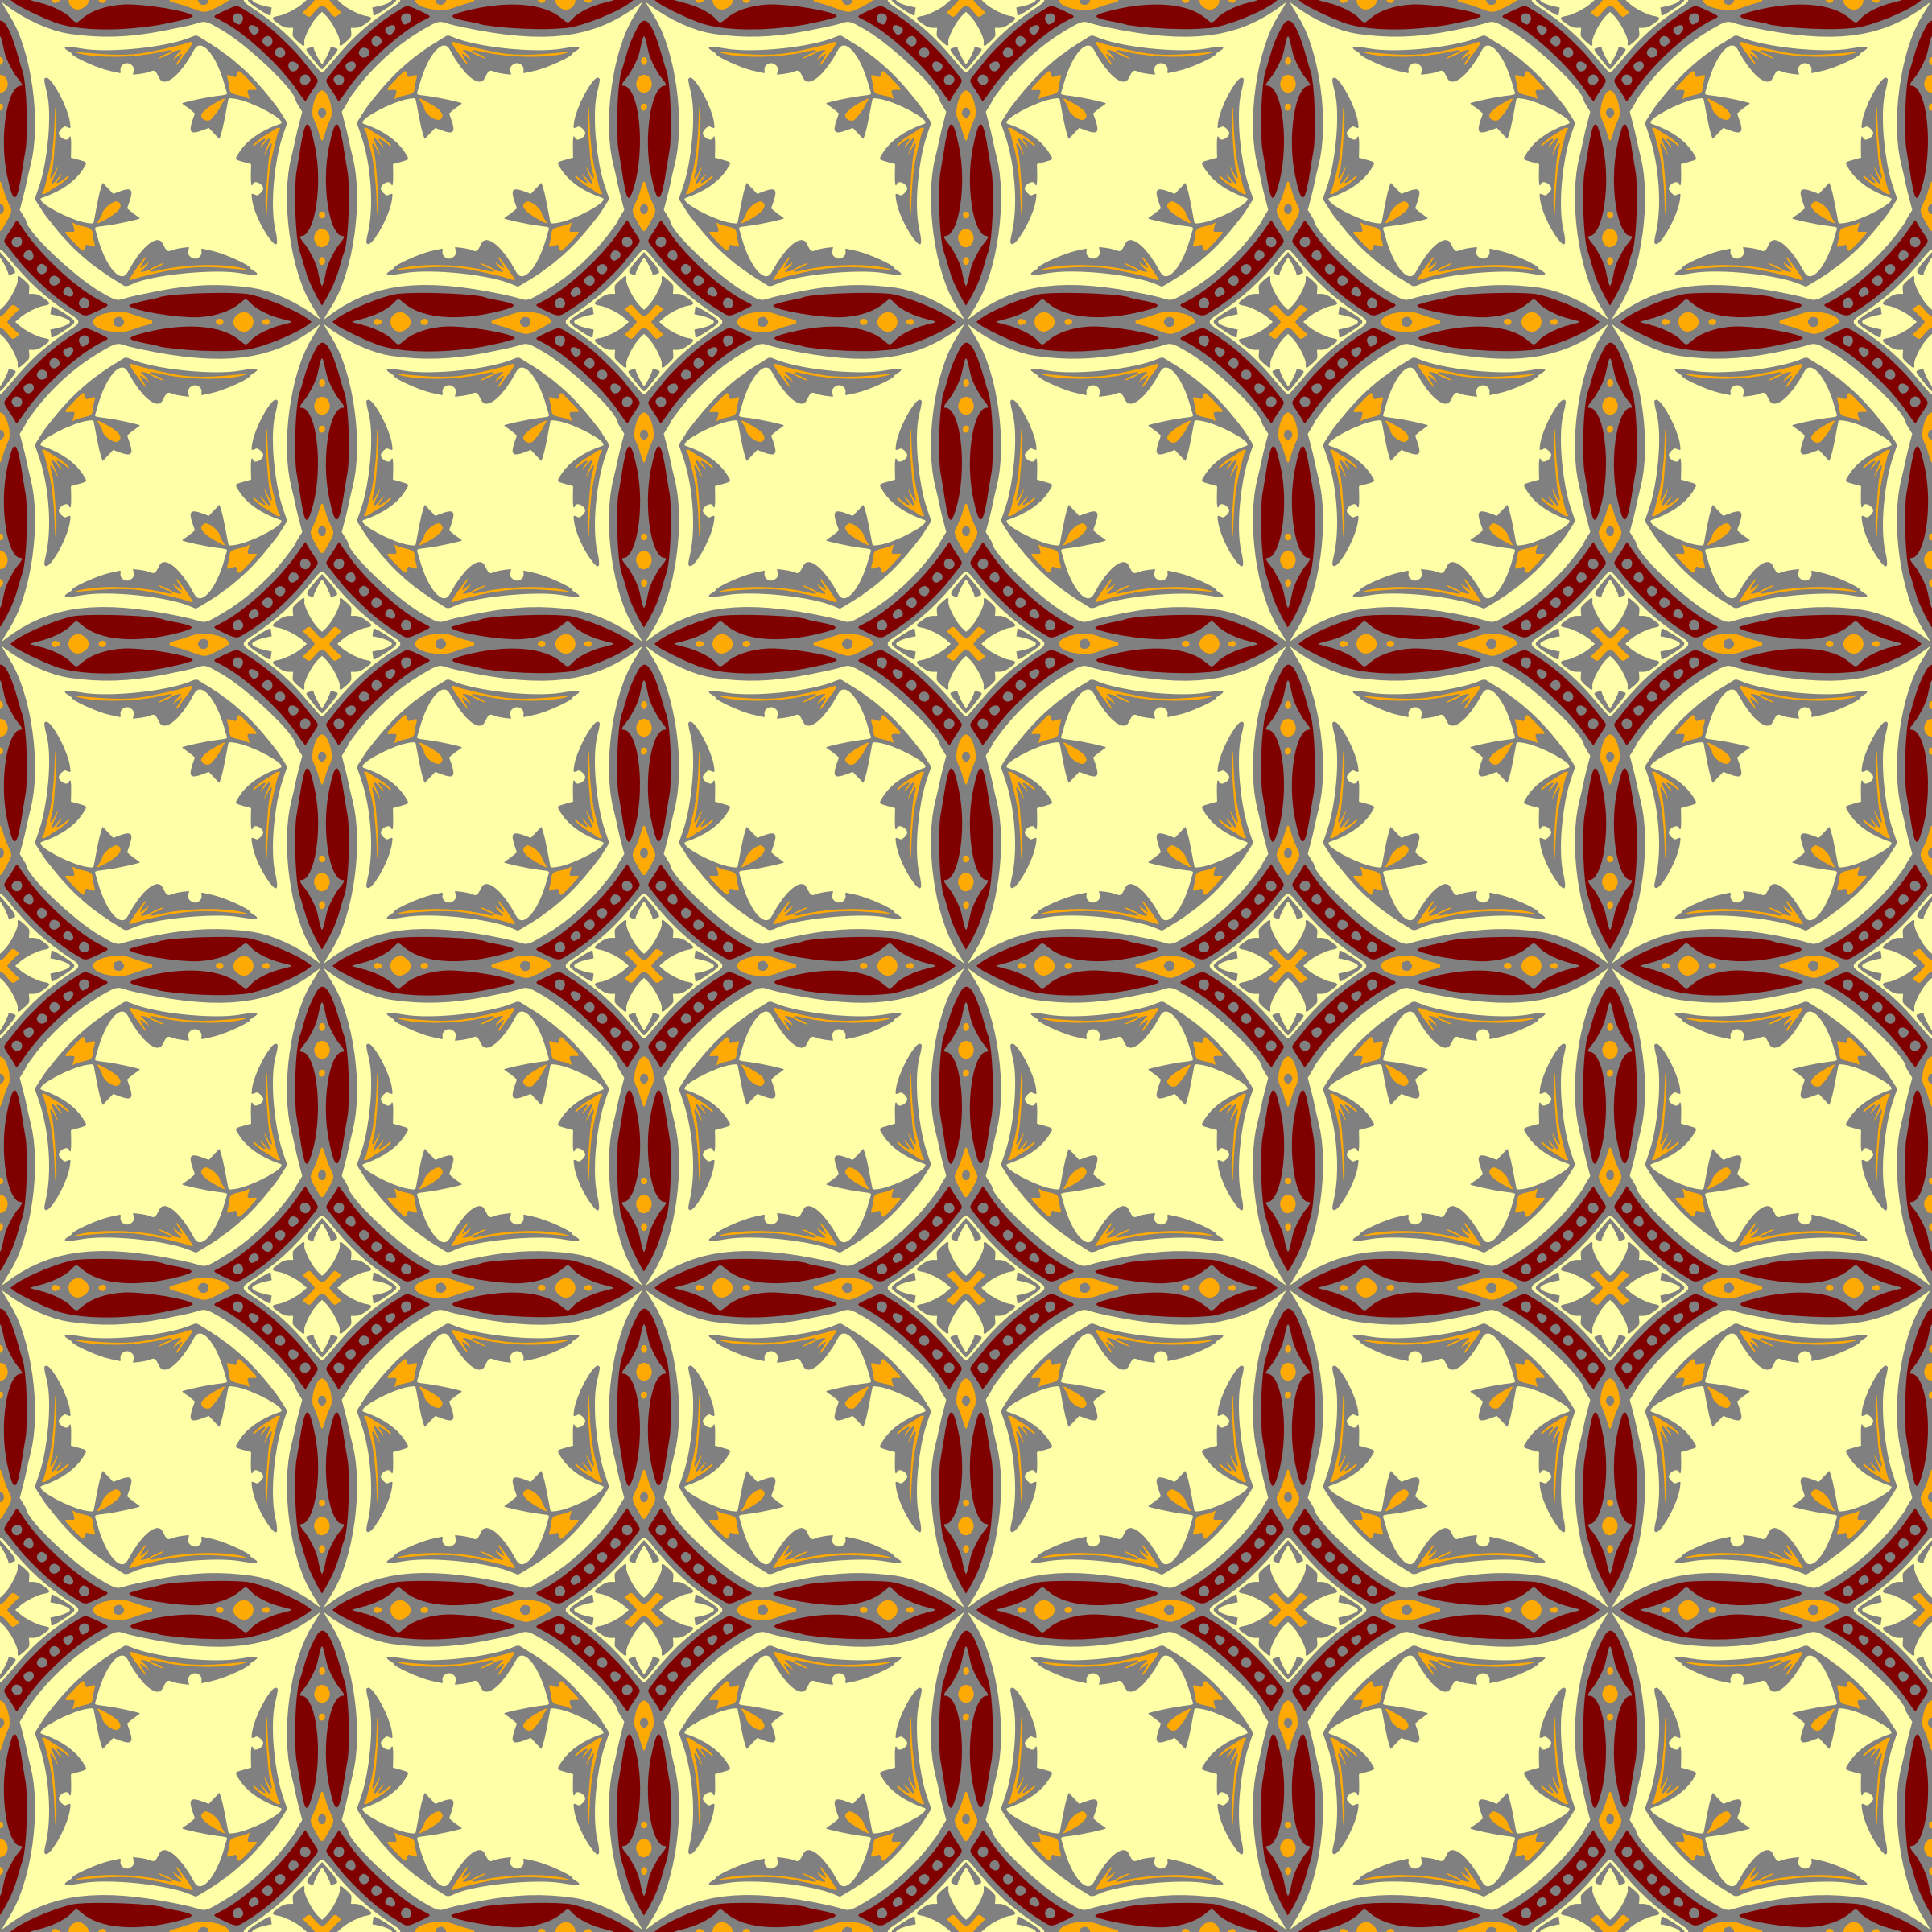 Background pattern 221 (colour) by Firkin